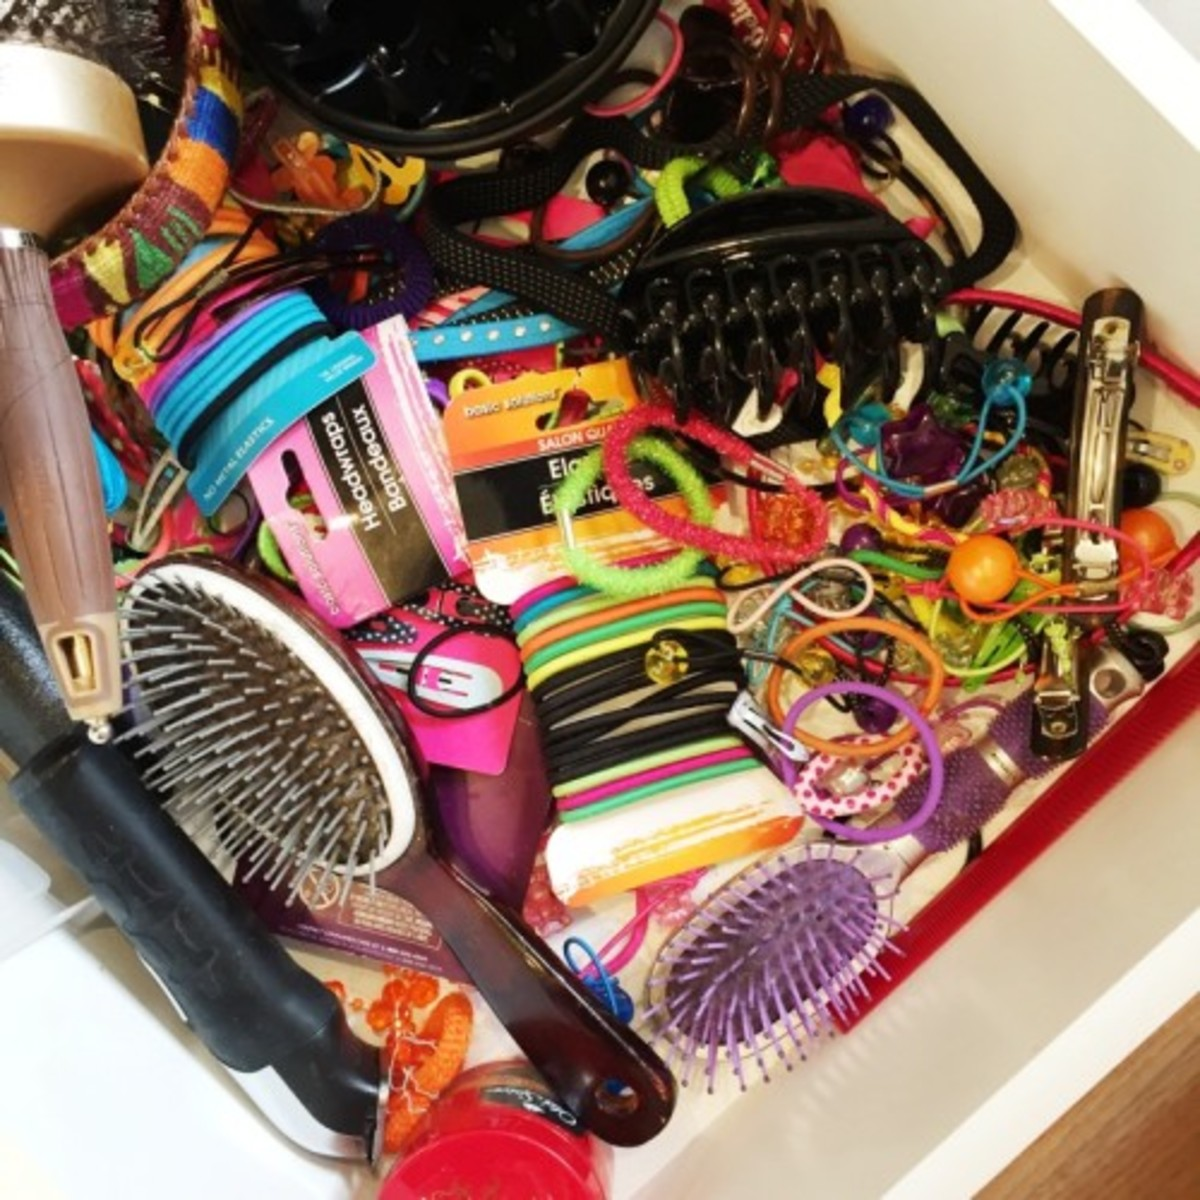 (I know I'm not the only one with a drawer like this.)